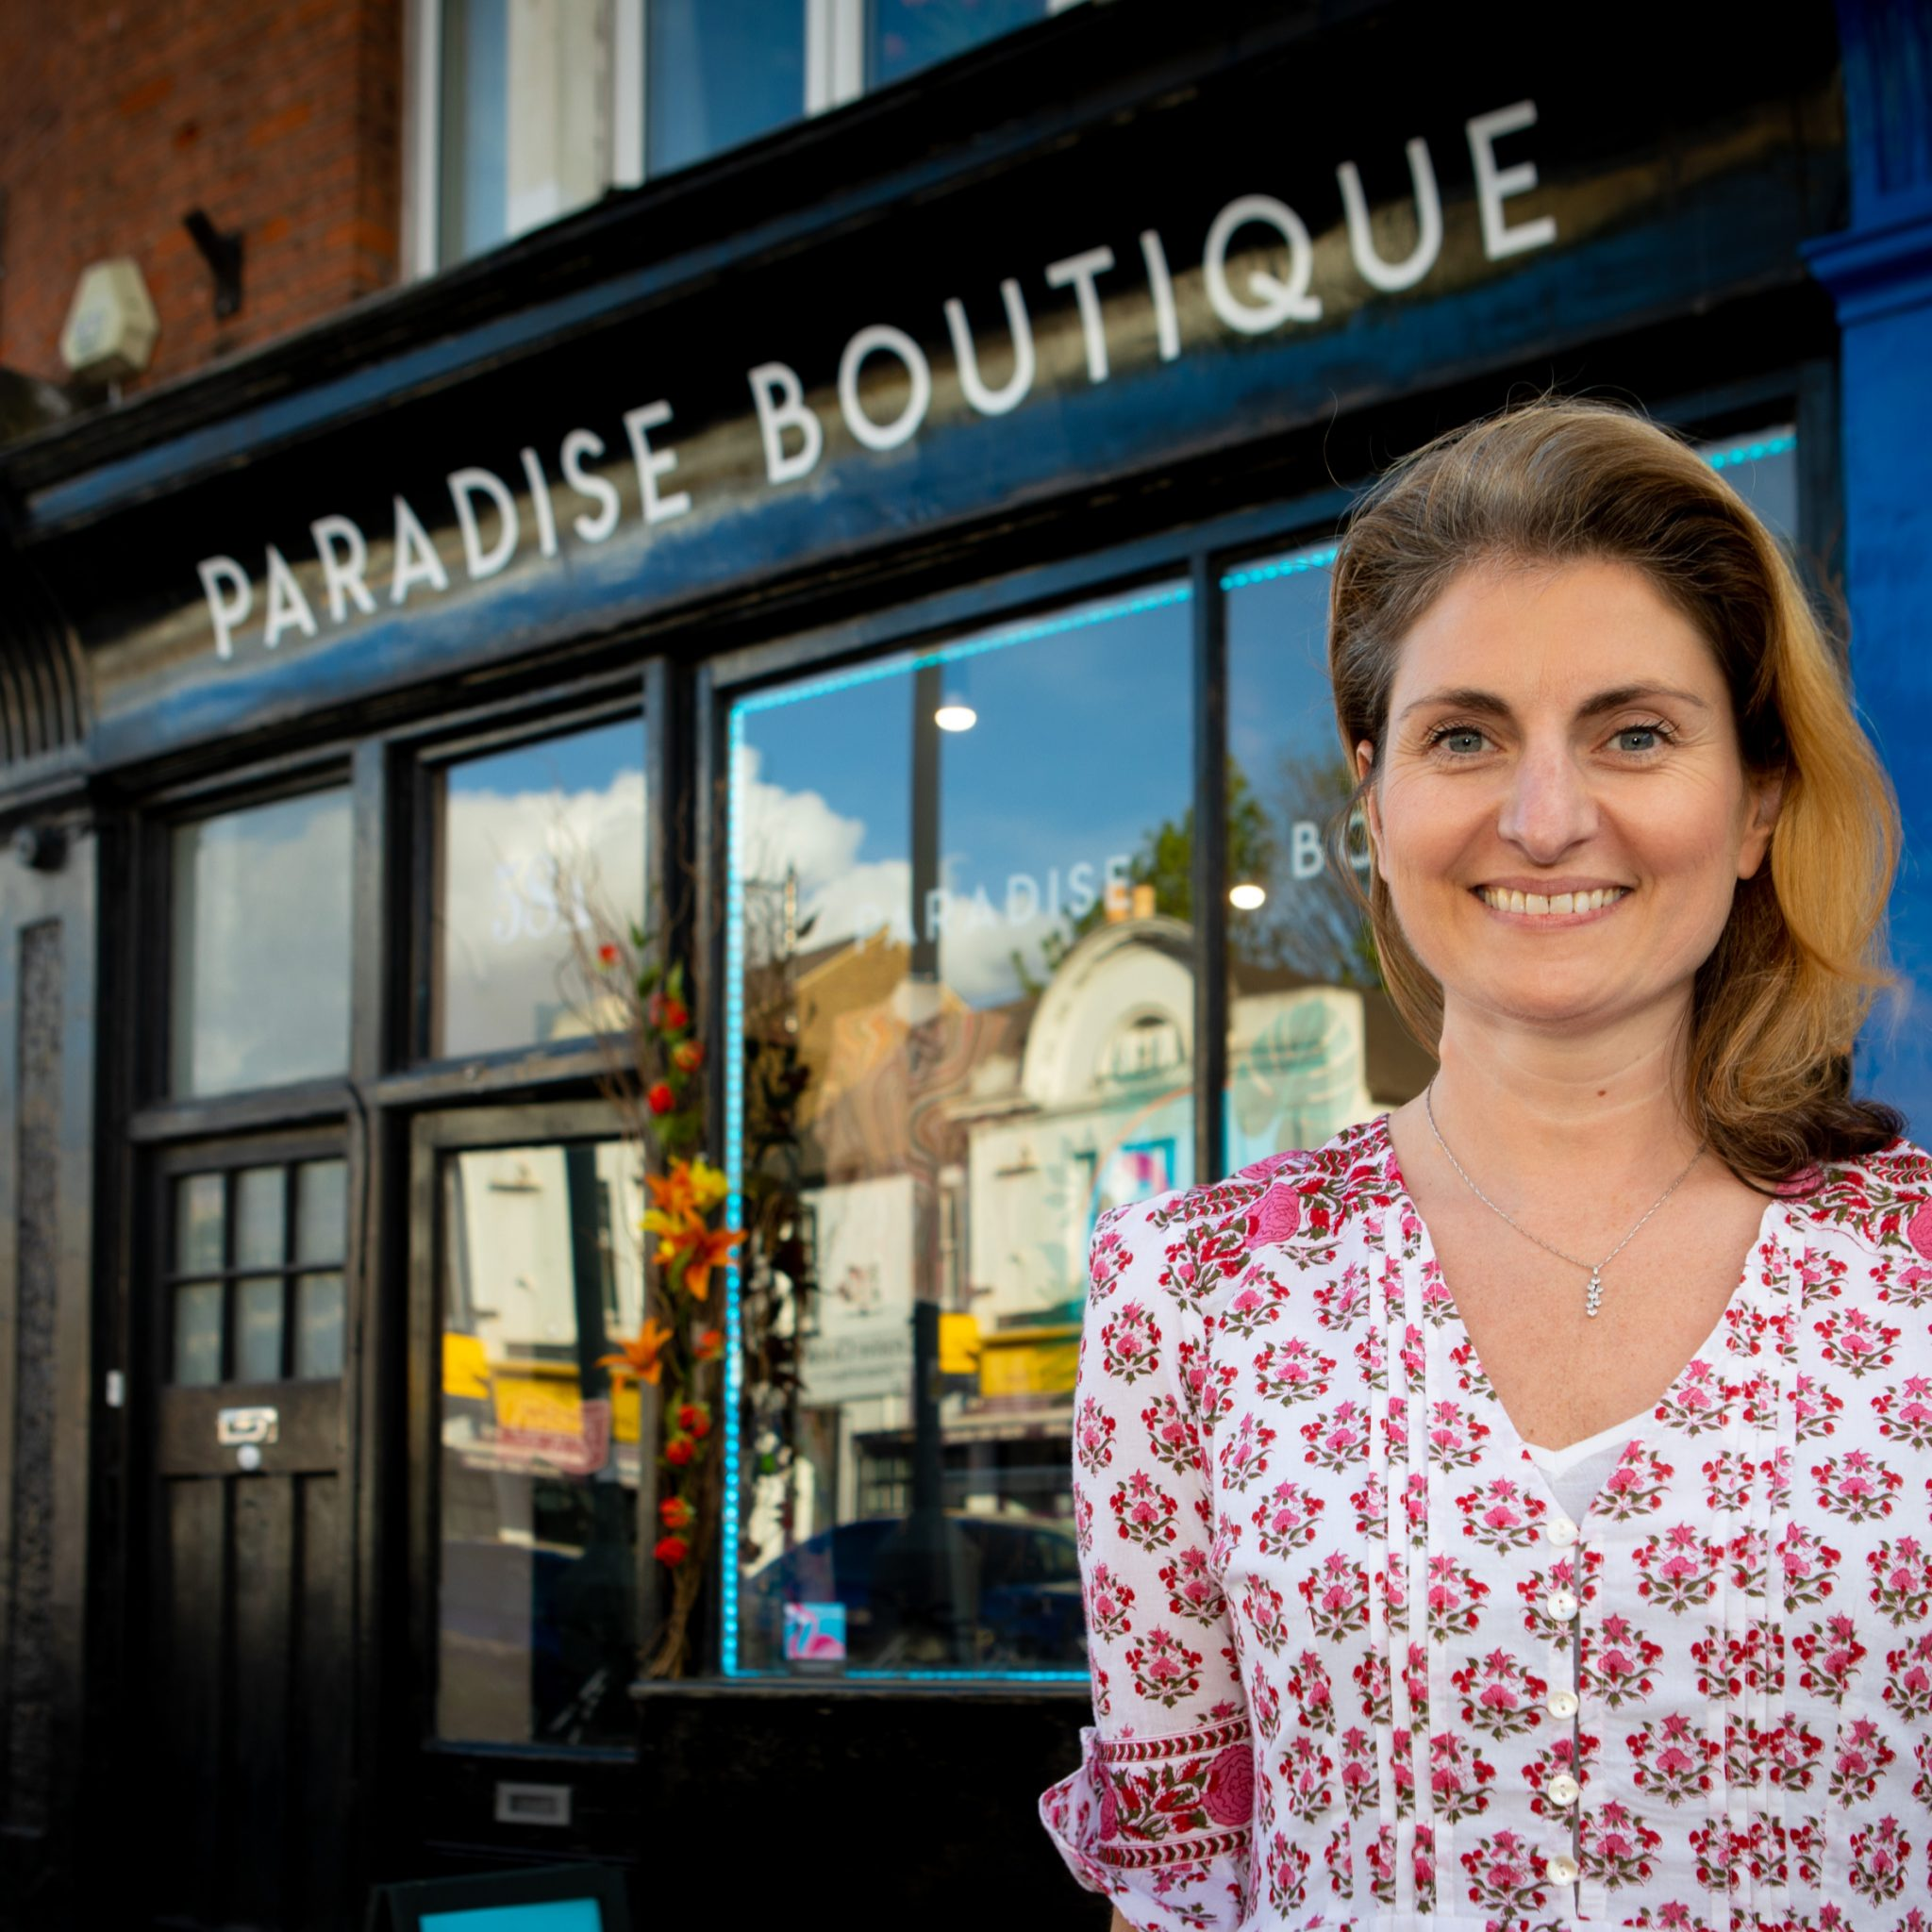 Helen Looker outside Paradise Boutique in East Molesey